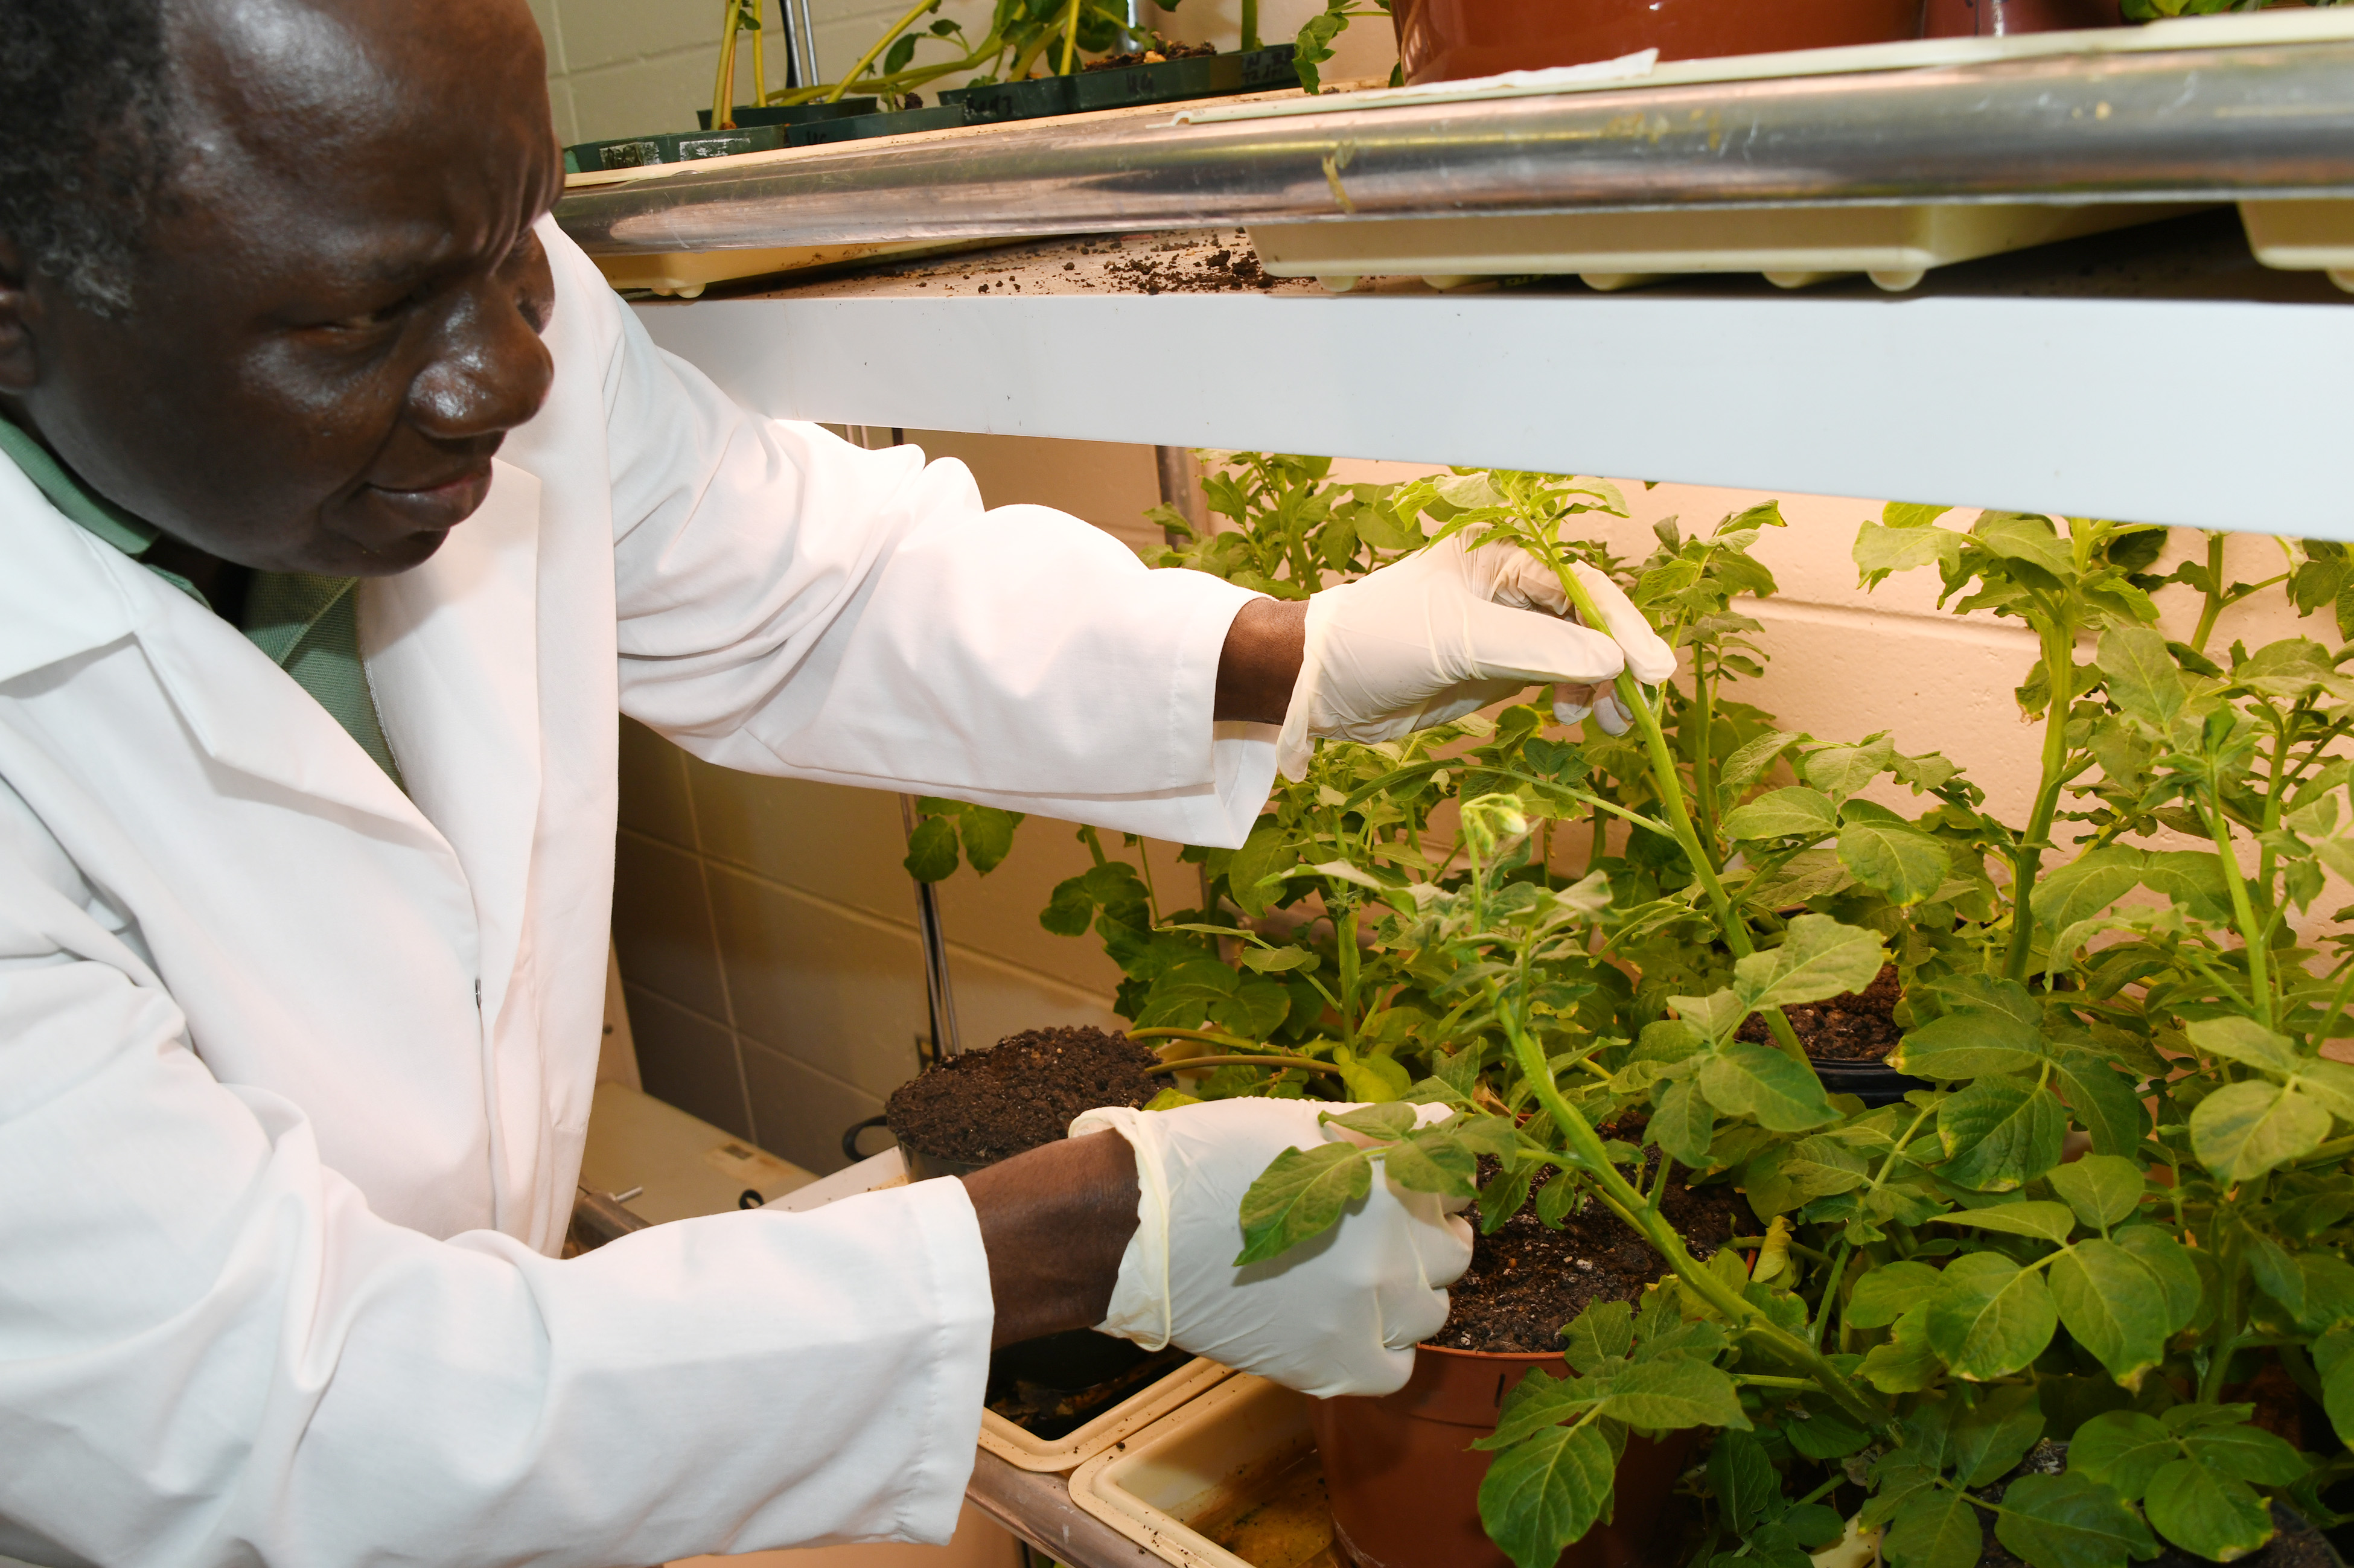 Dr. Vincent Fondong. professor of biological sciences, shown here tending to his research plants, has been awarded a four-year $1.1 million research grant from the National Institute of Food and Agriculture (NIFA). His research will target a virus that reduces potato yields and lowers their quality.